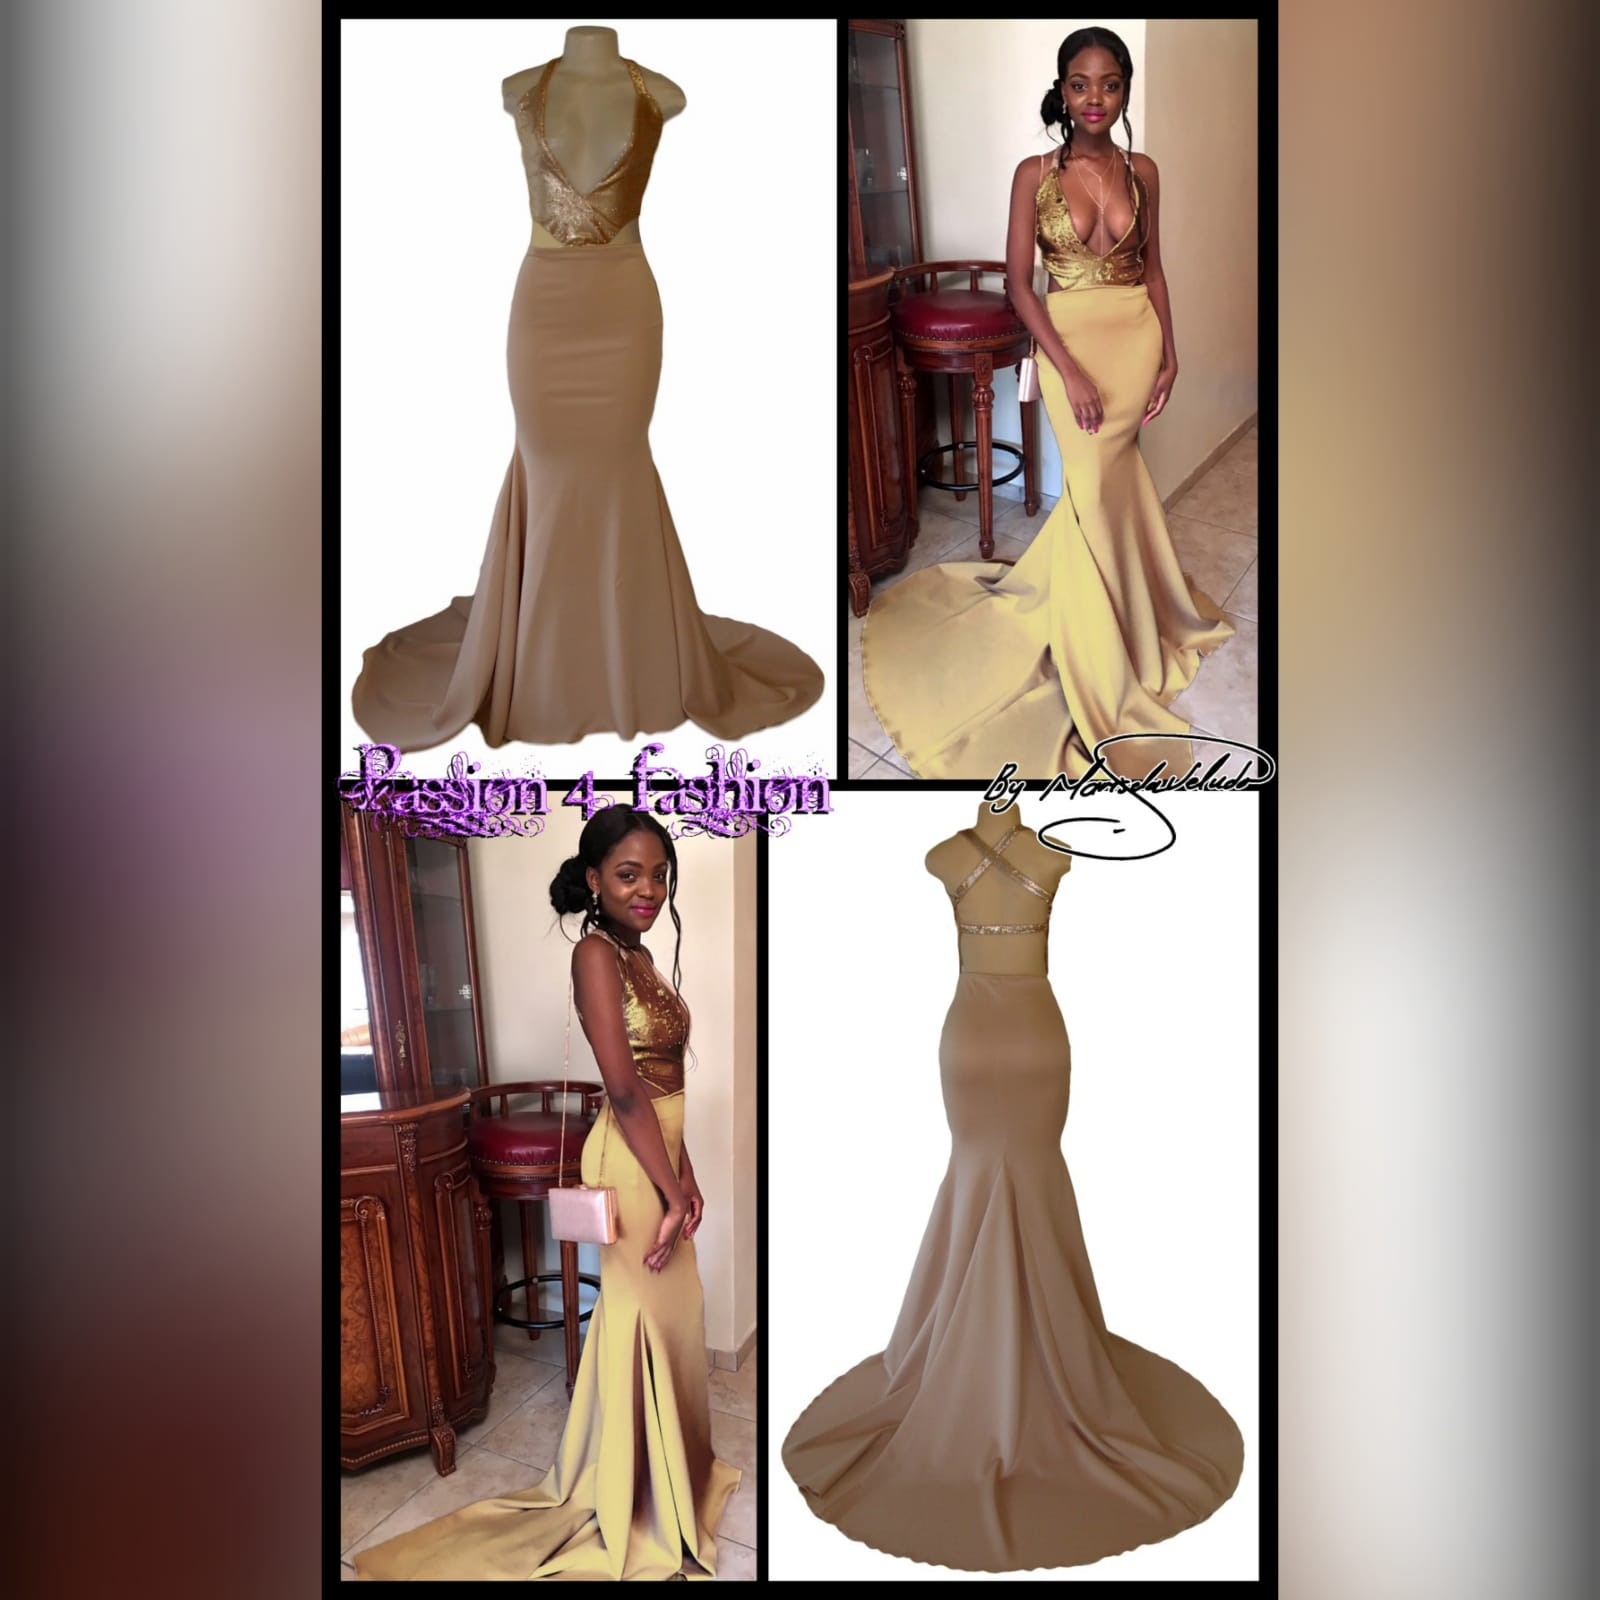 Nude and gold soft mermaid prom dress 5 nude and gold soft mermaid prom dress. Bodice in sequins with a plunging neckline and a naked back detailed with straps. Bottom with a long wide train.